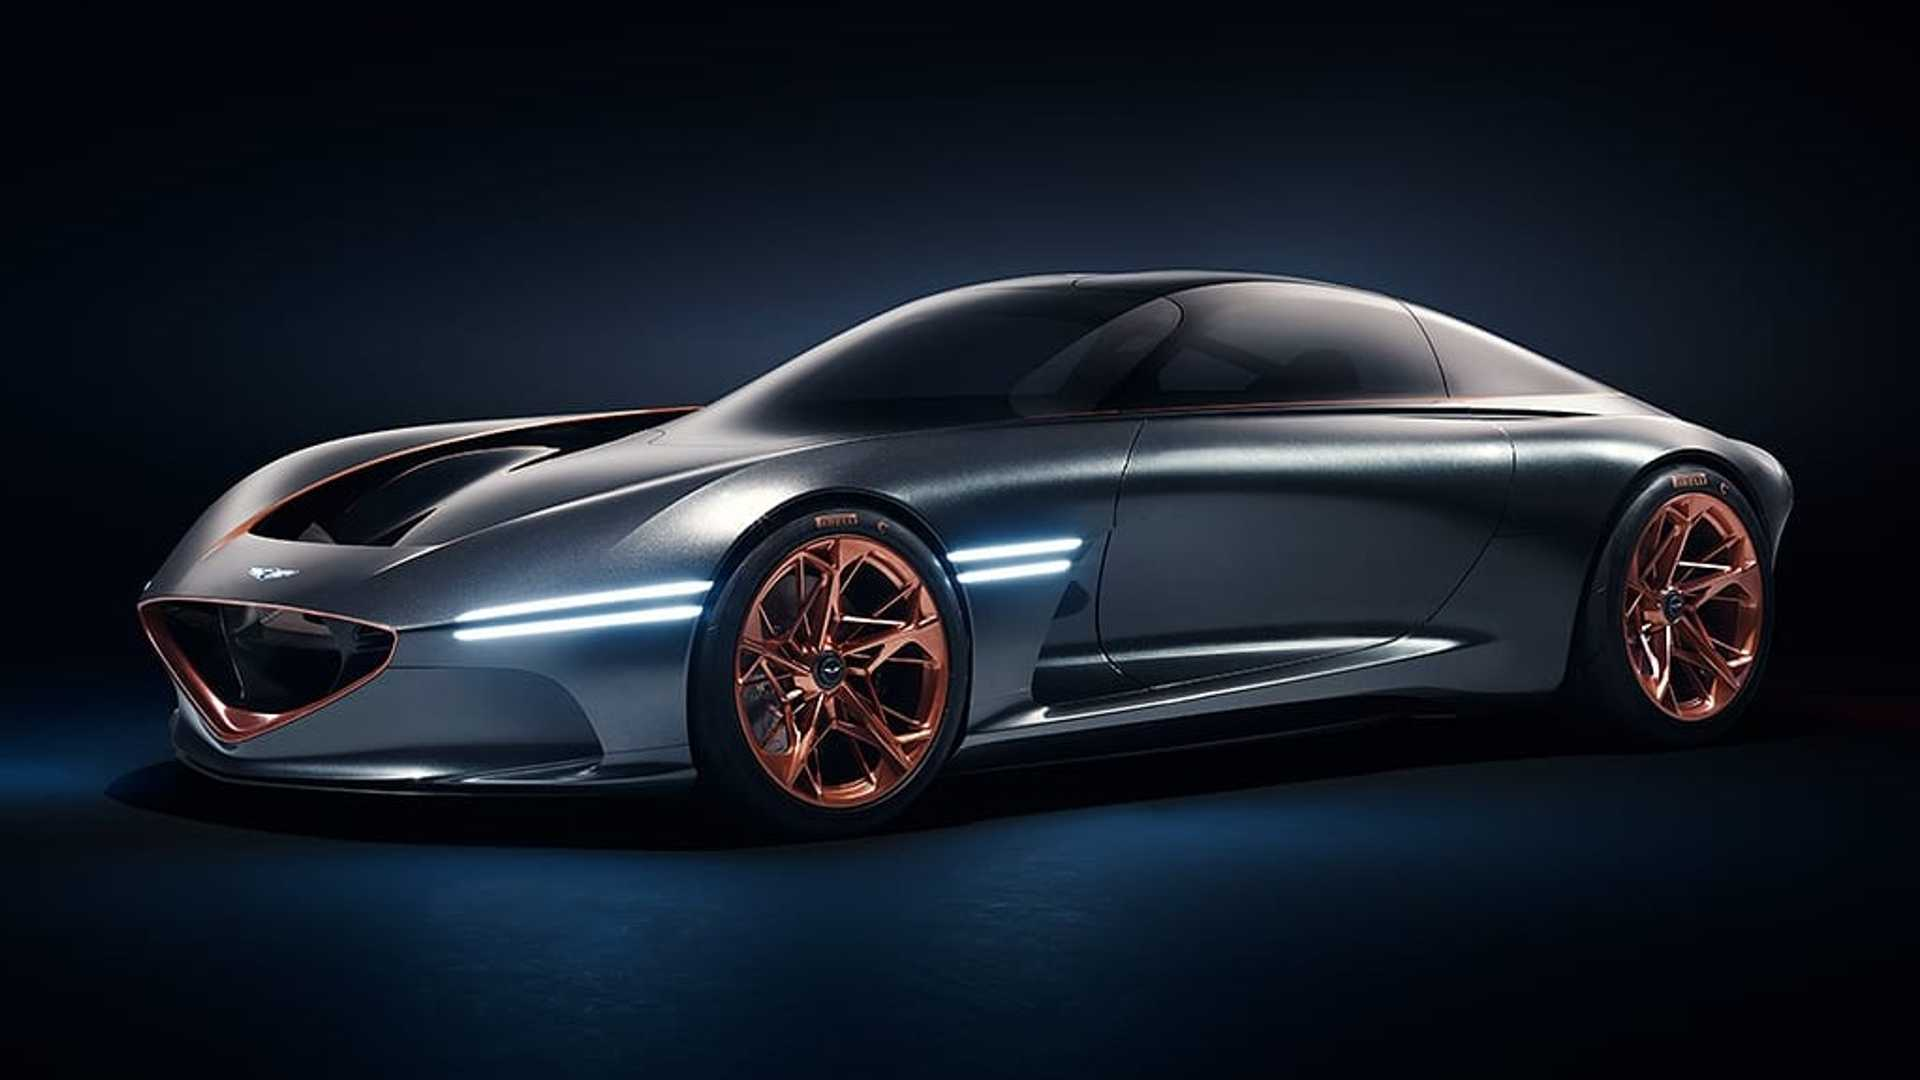 Best Sports Car 2021 2021 New Models Guide: 30 Cars, Trucks, And SUVs Coming Soon